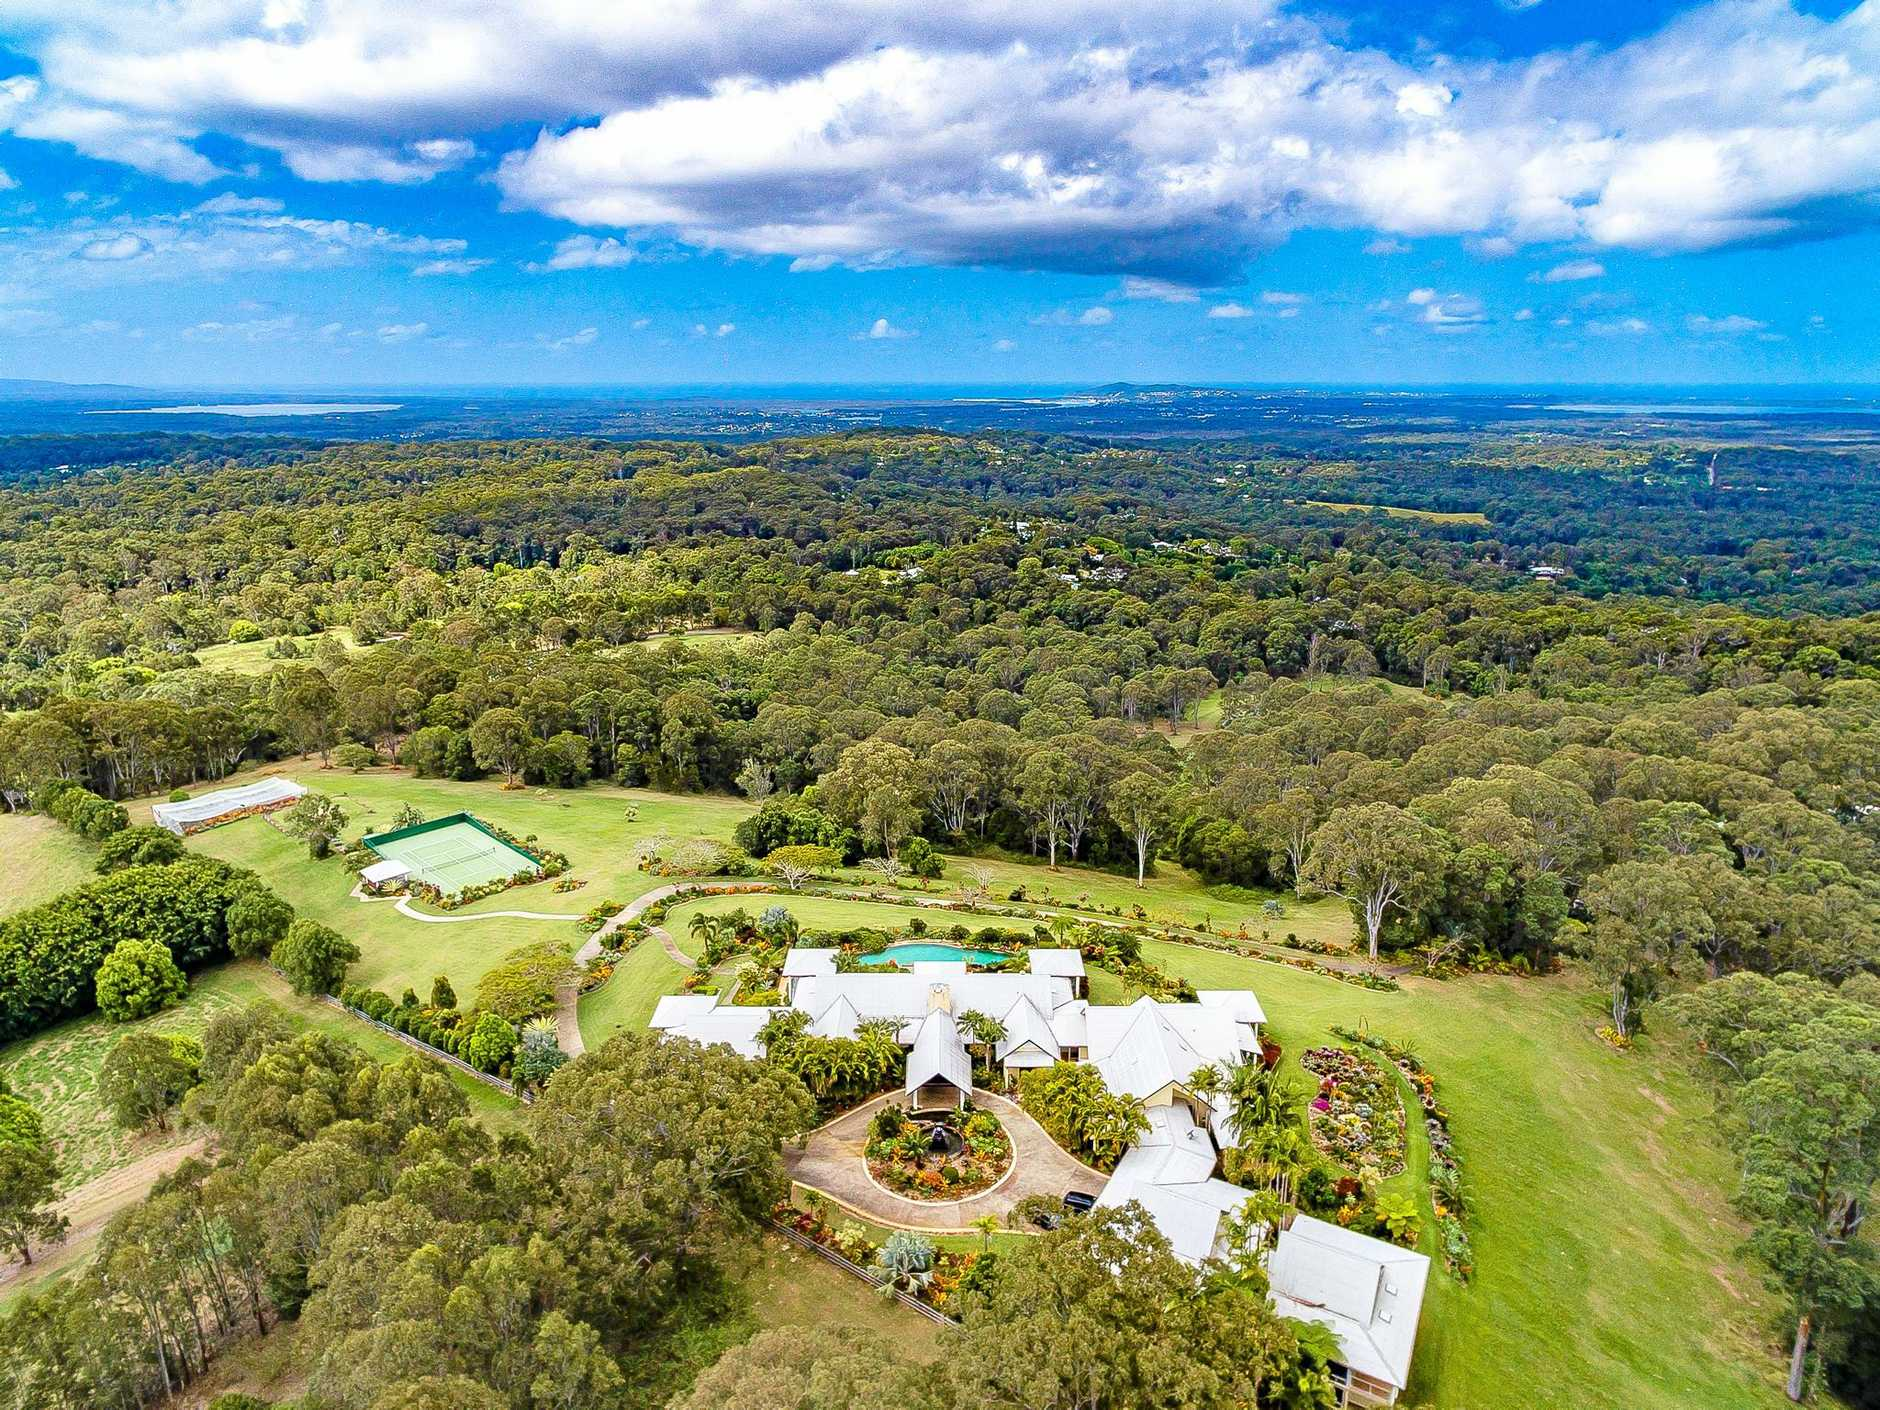 PRICE SLASHED: Legendary songwriter Mike Chapman's estate, Cintamani, in the Noosa hinterland, has been slashed in price.